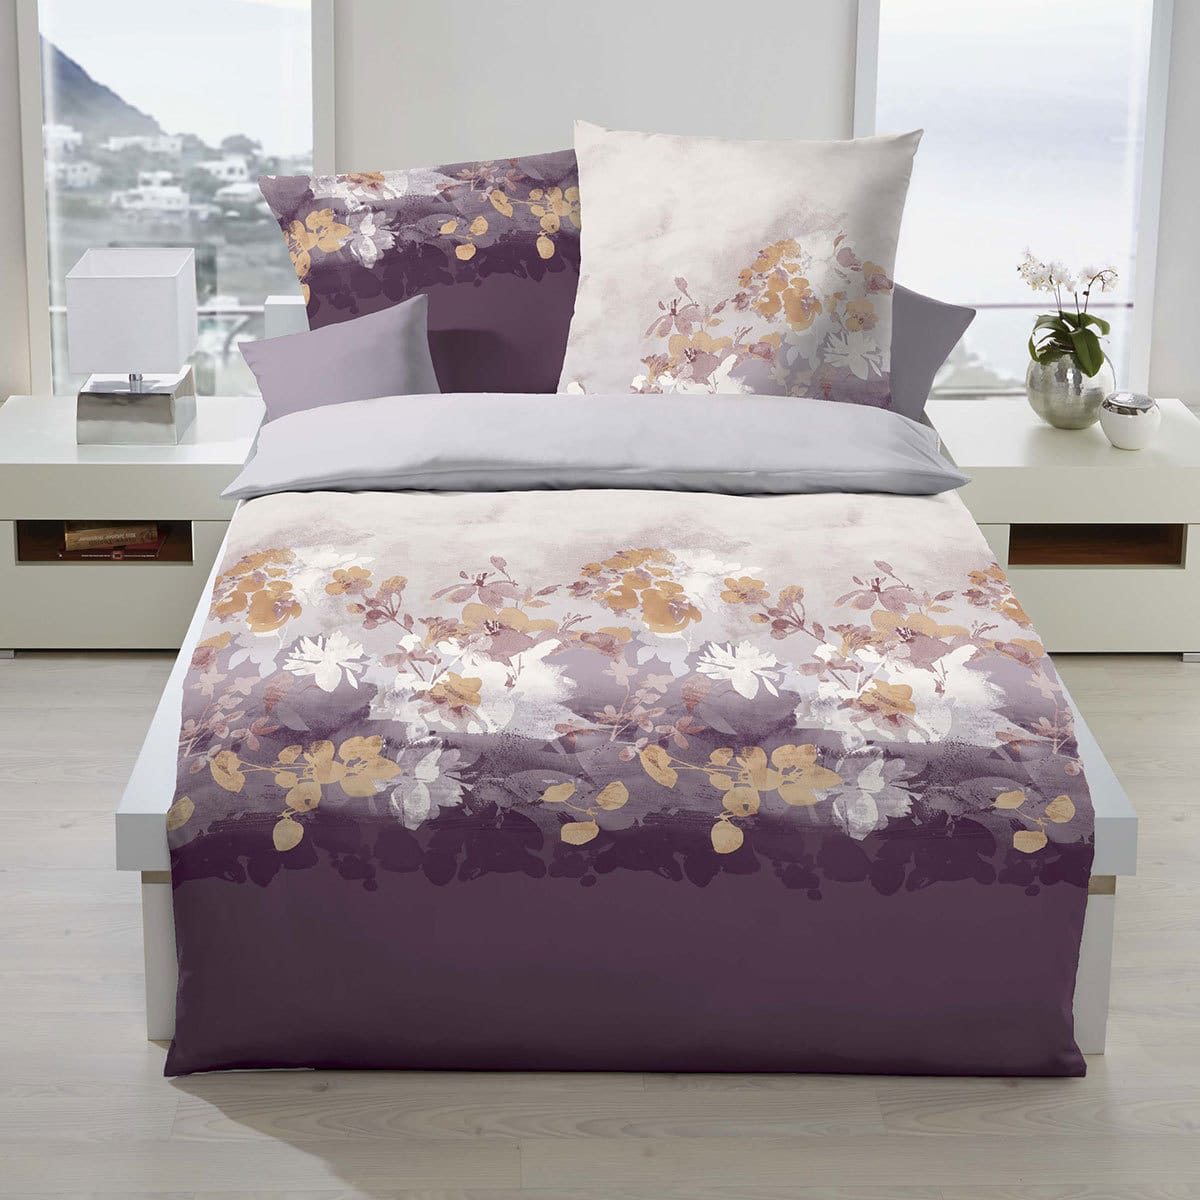 kaeppel biber bettw sche flair mauve g nstig online kaufen. Black Bedroom Furniture Sets. Home Design Ideas